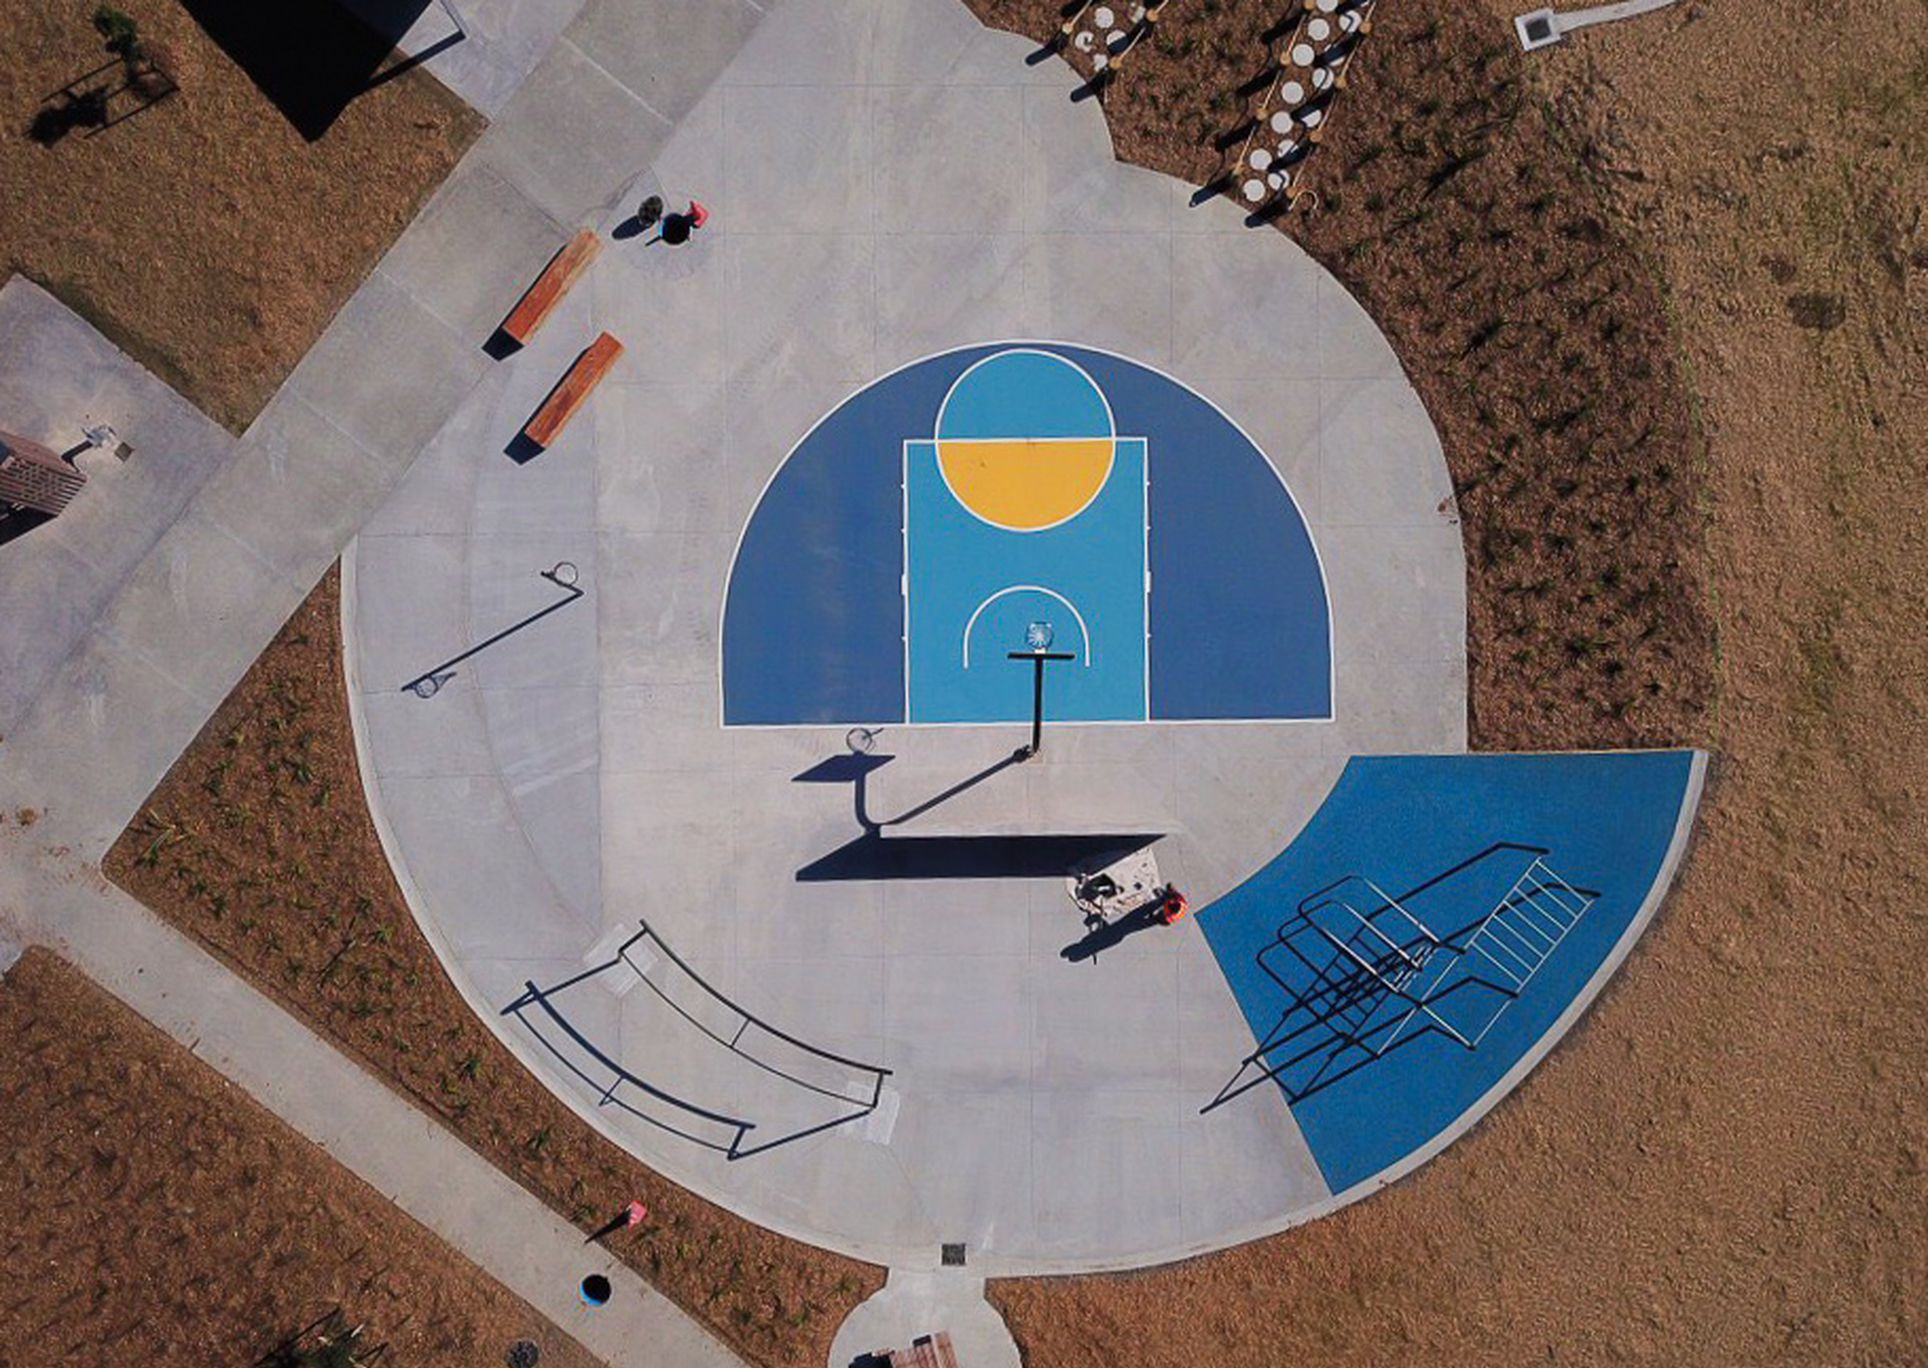 Basketball D Court Bonair Reserve